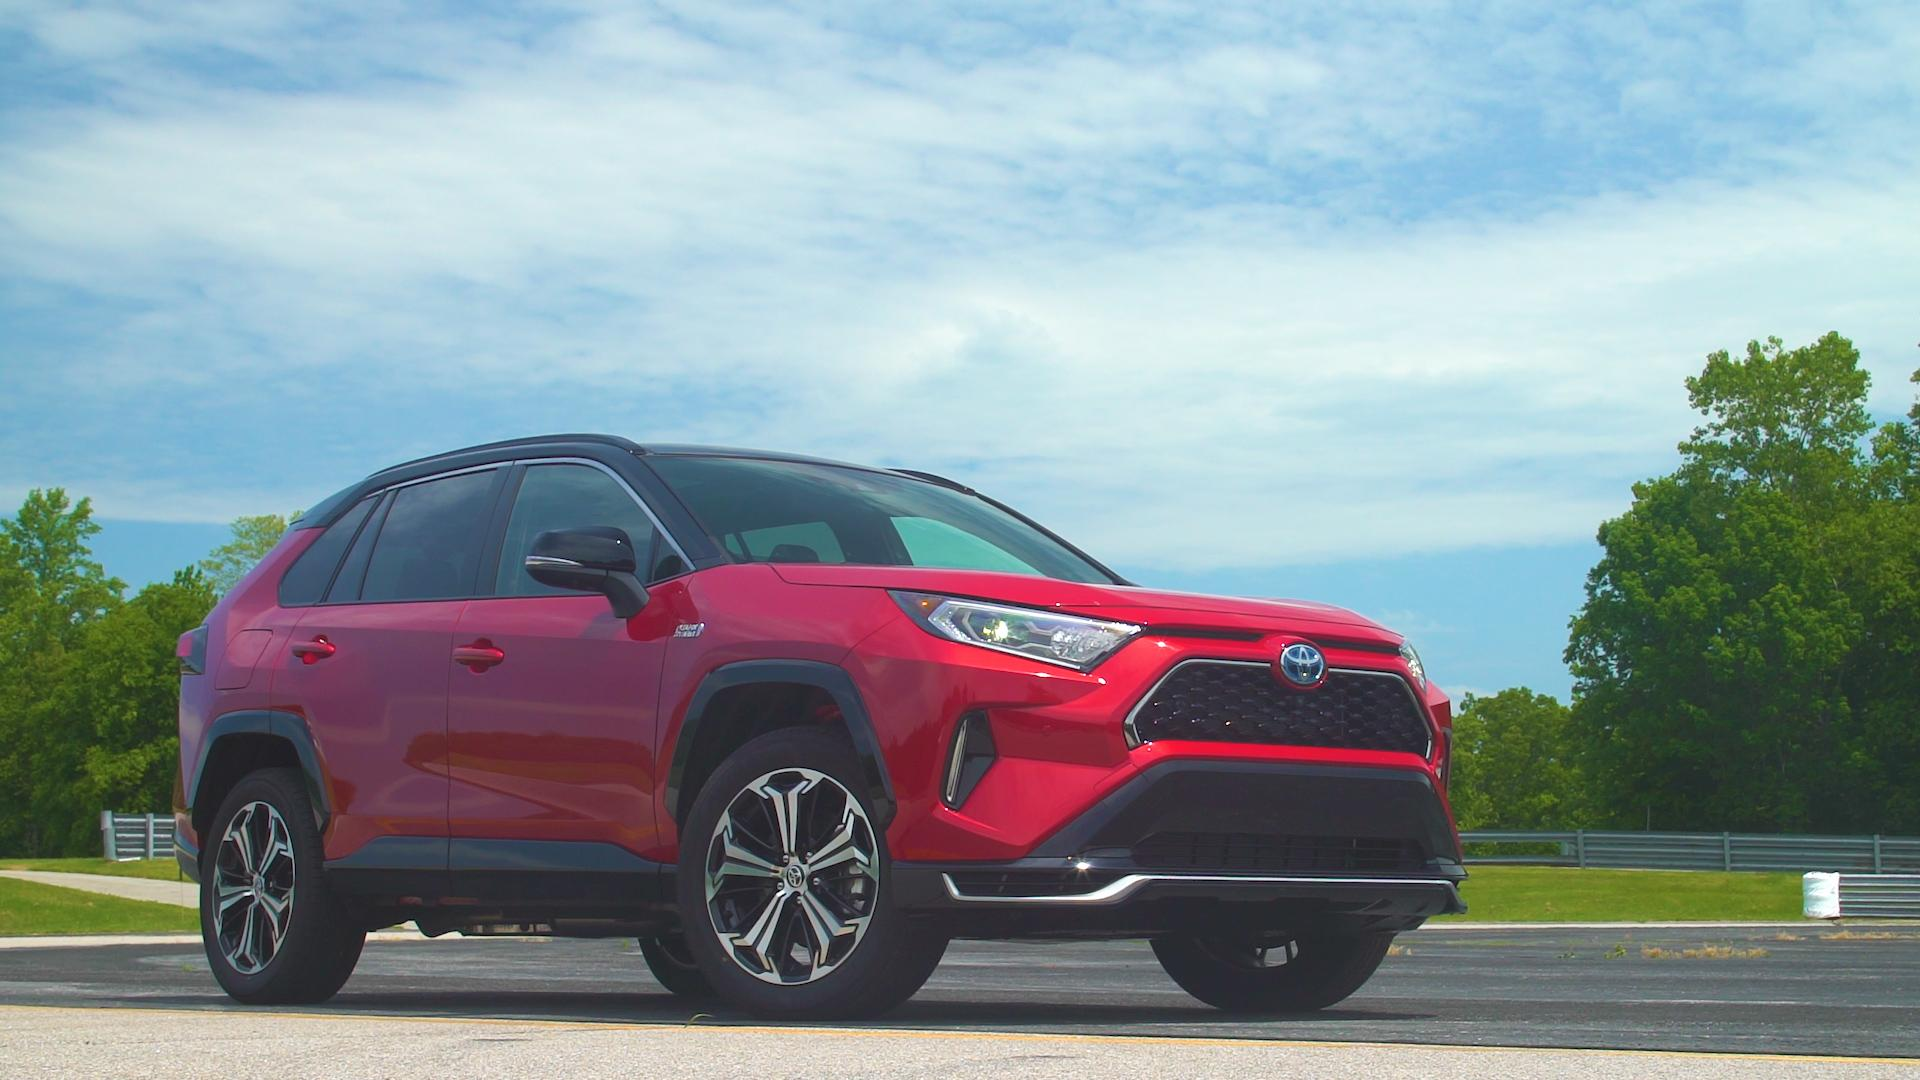 Consumer Reports Best Laptops 2021 Talking Cars #262: 2021 Toyota RAV4 Prime & Ford F 150   Consumer